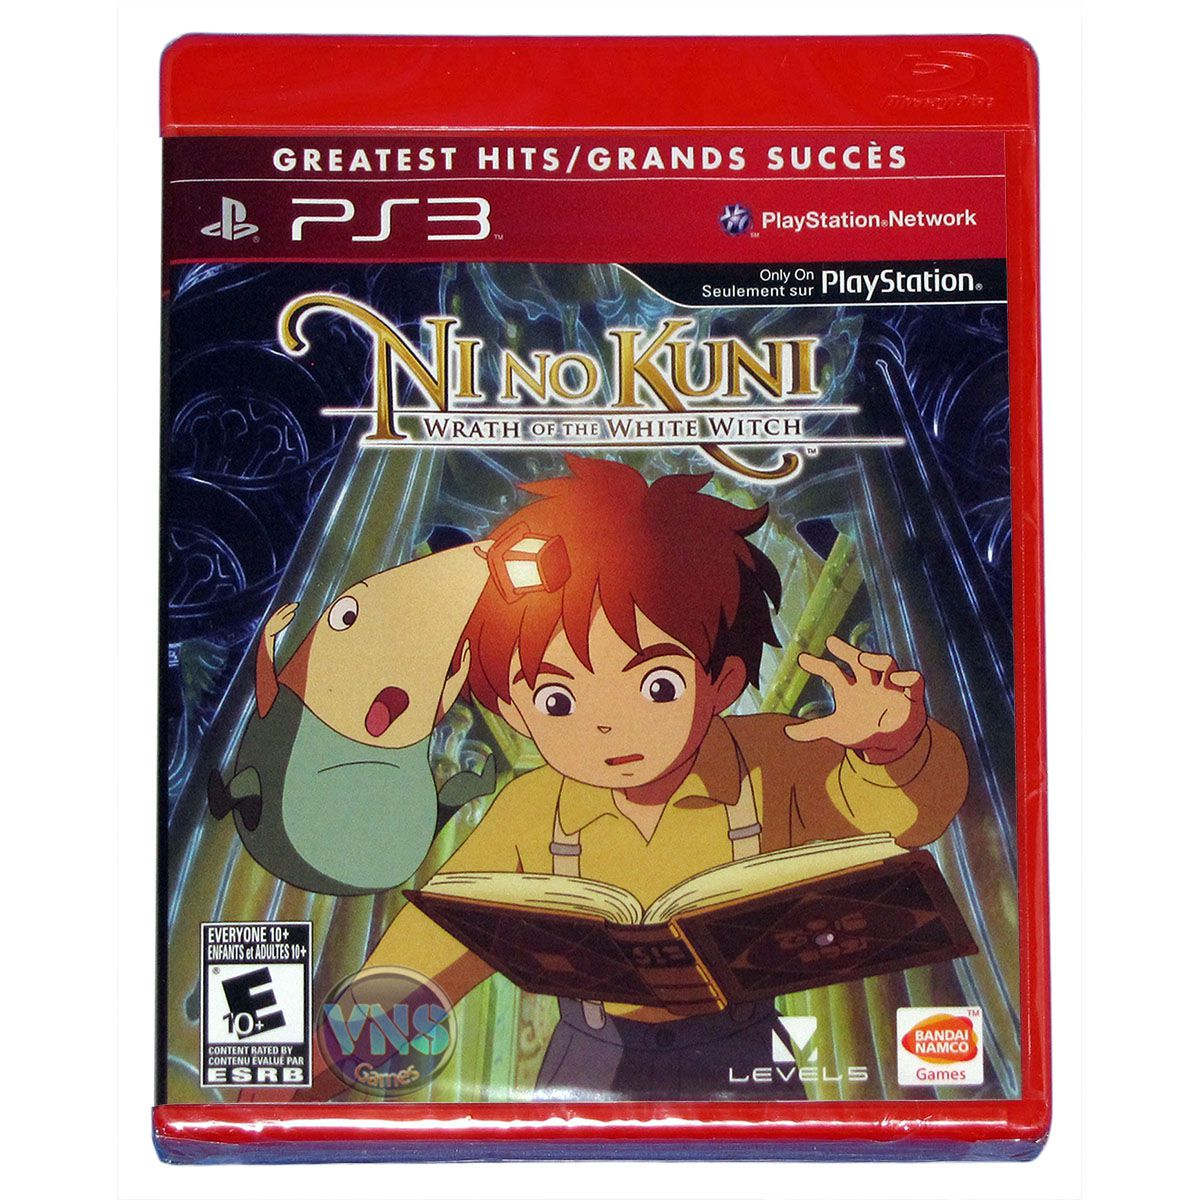 Nino Kuni Wrath of The White Witch - PS3